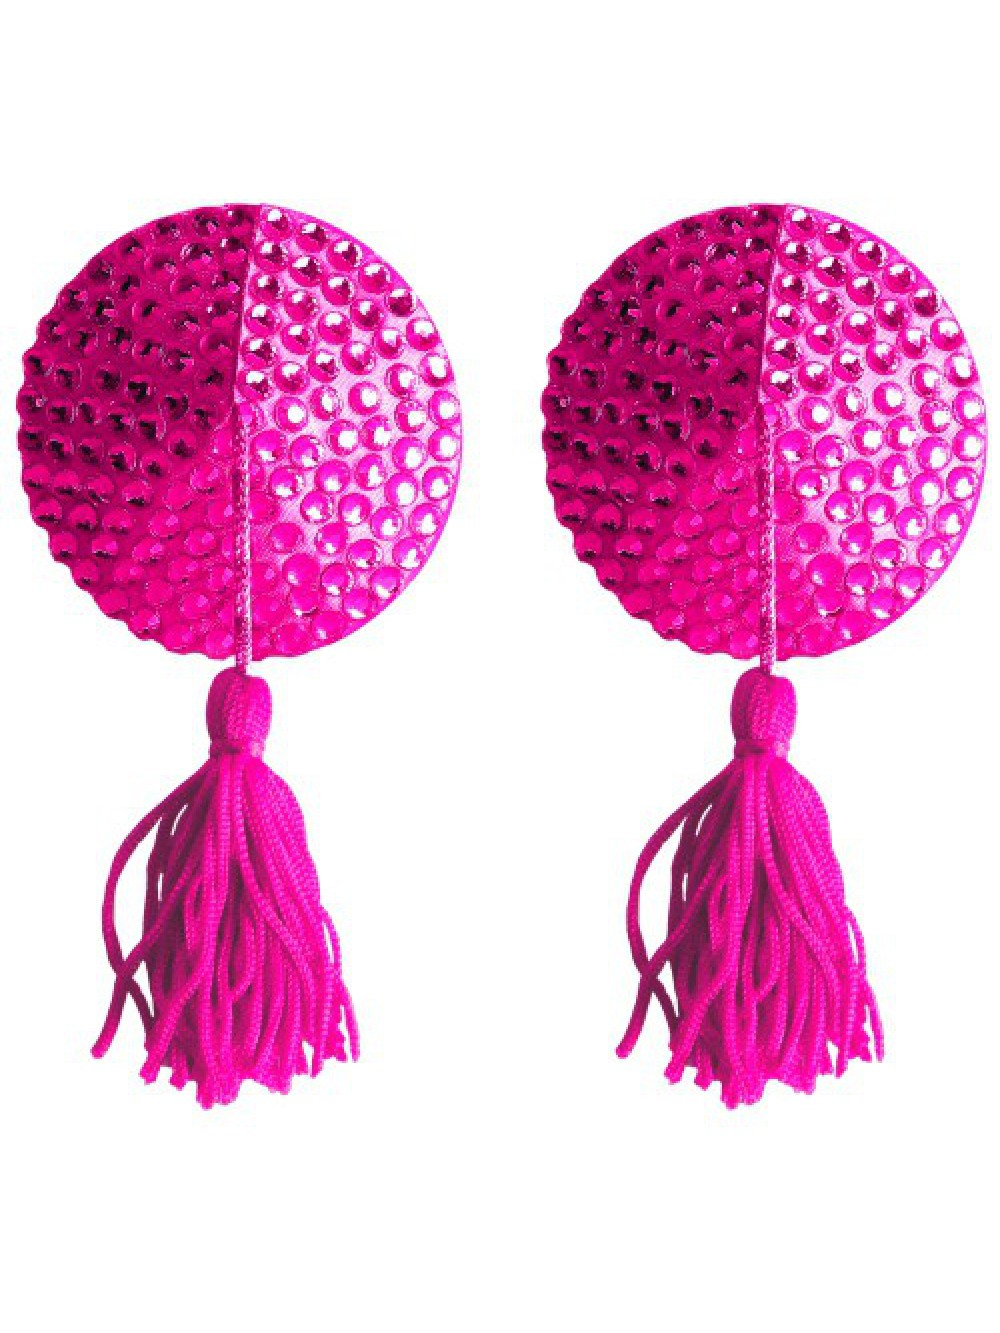 ROUND NIPPLE TASSELS OUCH! NIPPLE COVERS PINK 8714273948137